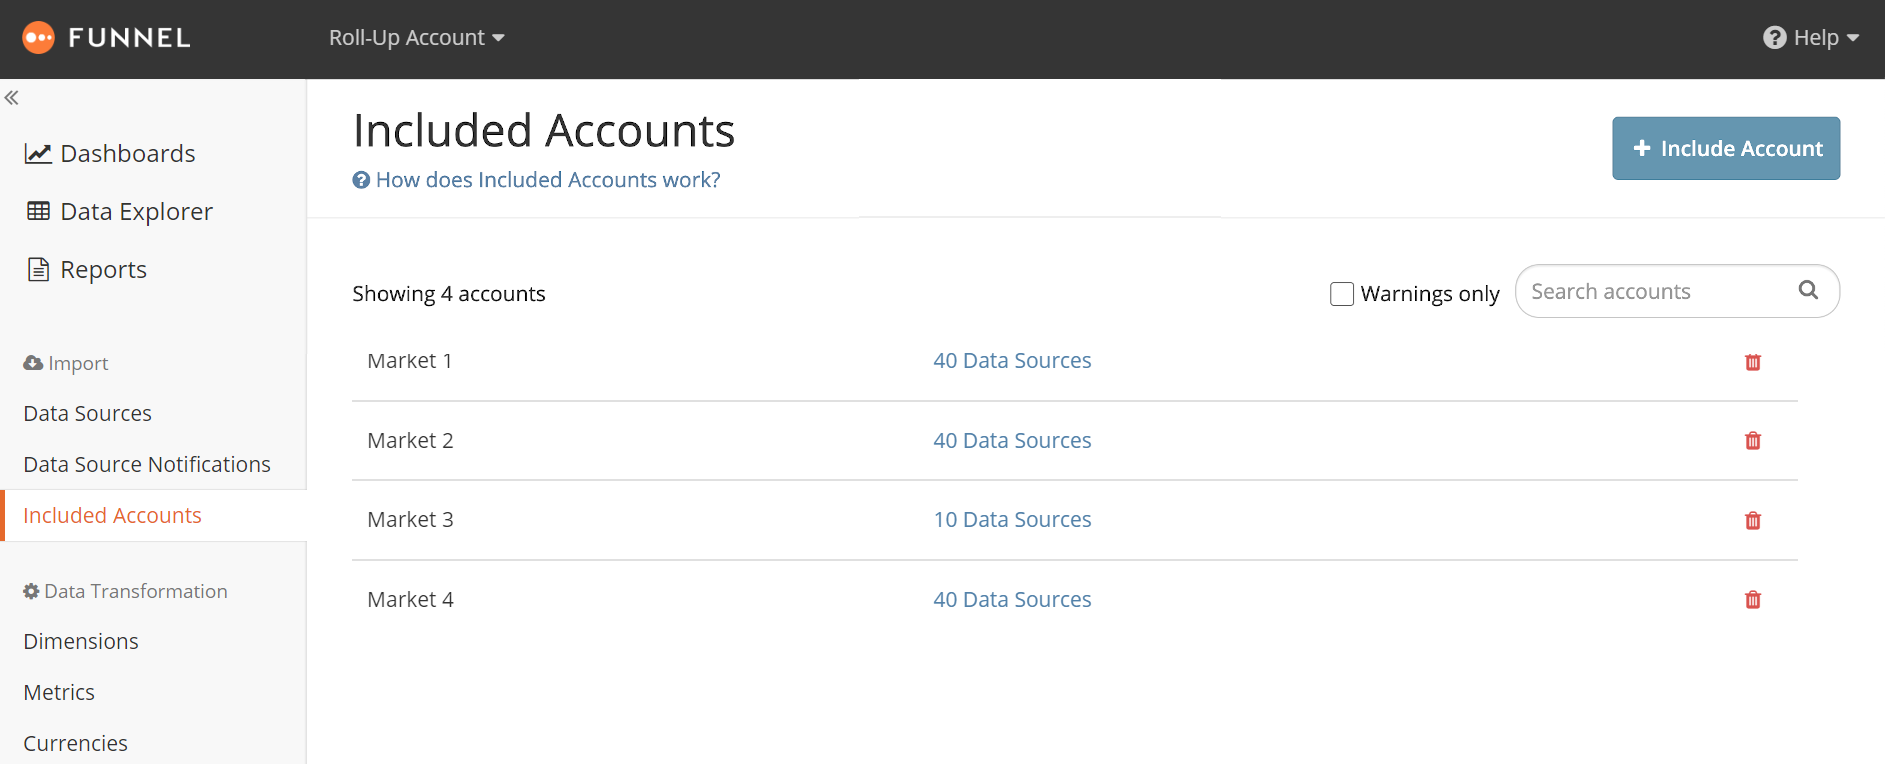 Included Accounts Overview showing four included accounts